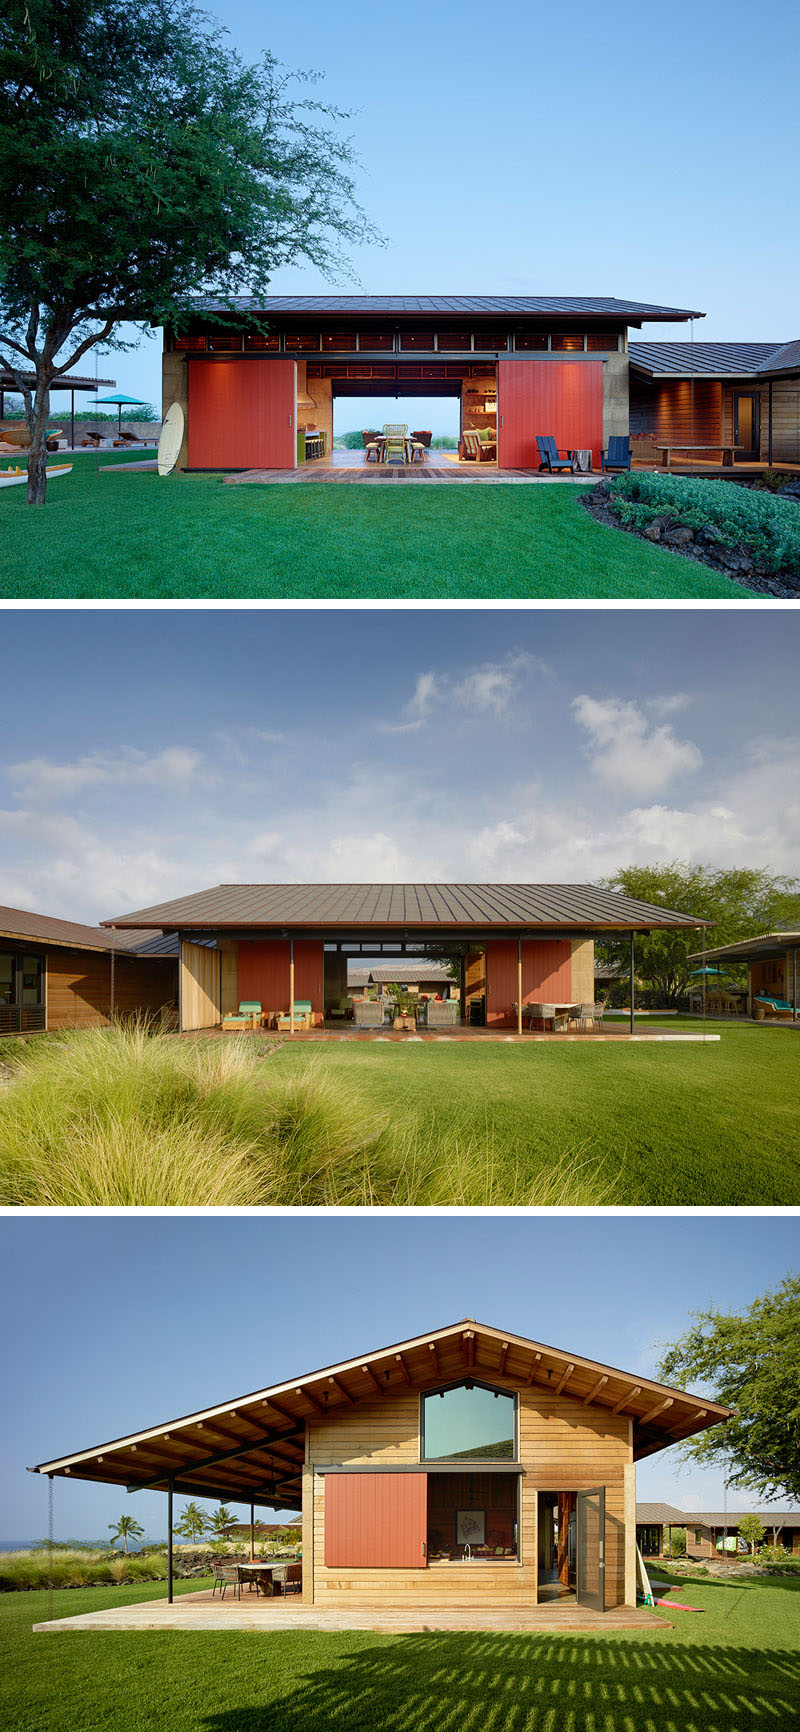 The kahua kuili house by walker warner architects ·